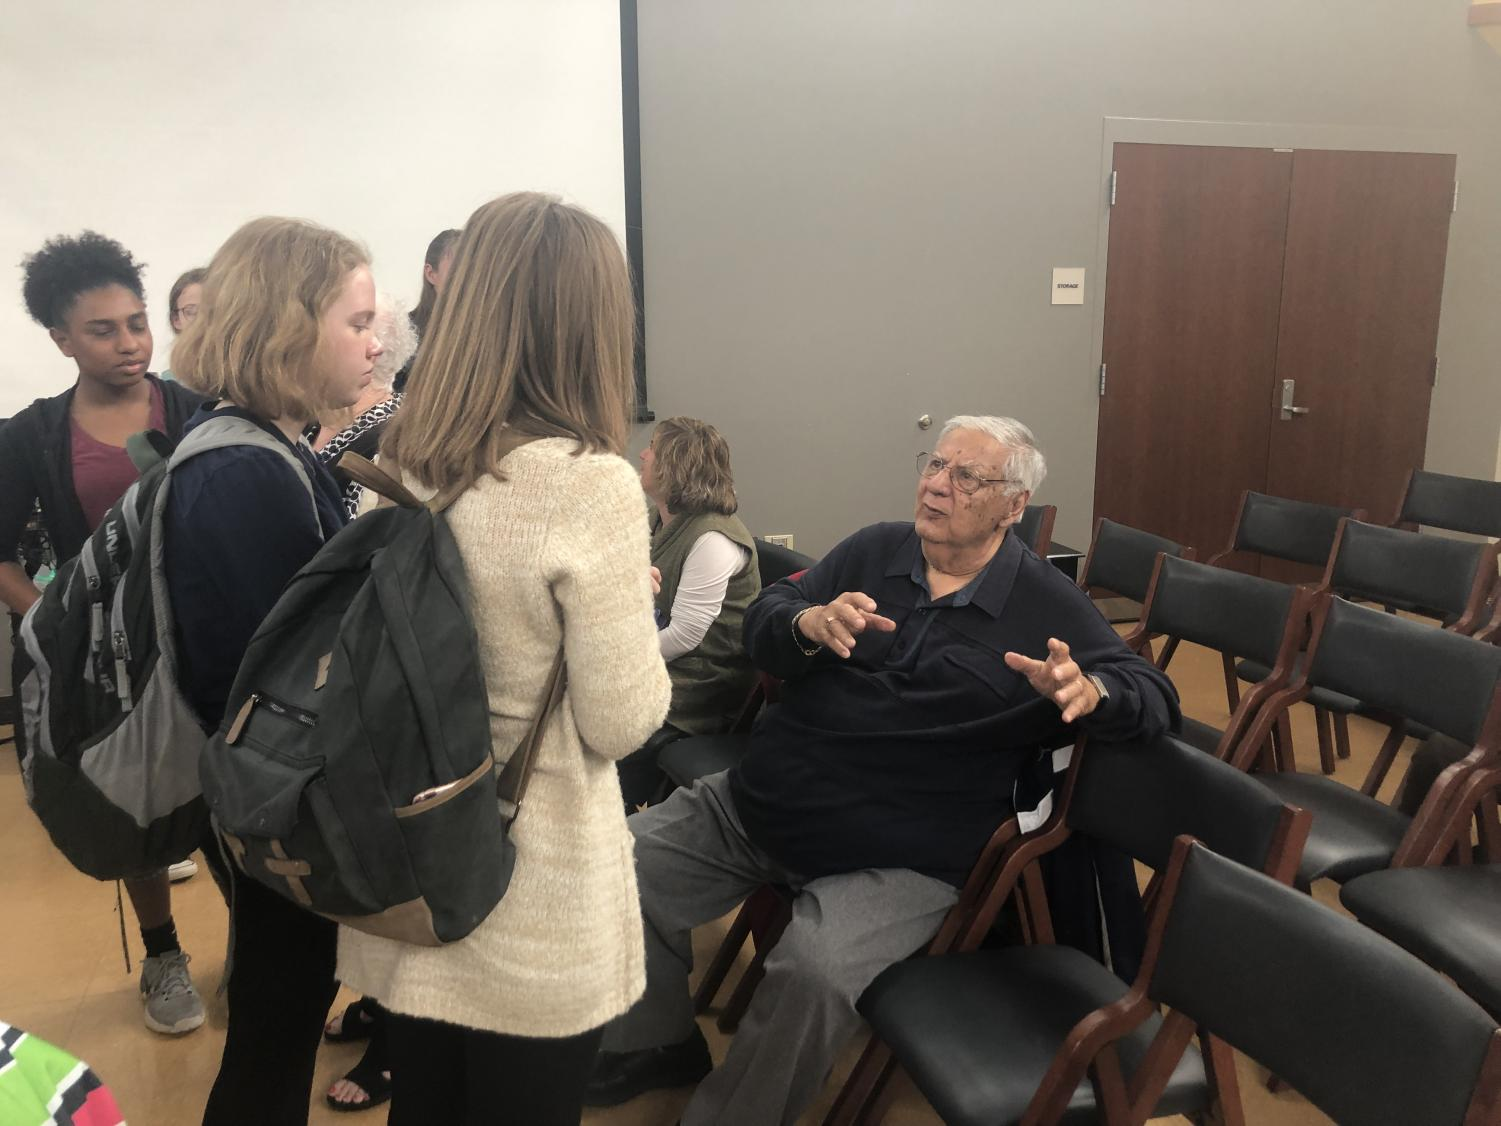 Matt Yosafat, a survivor of the Holocaust, spoke with his wife Anneliese to a group of WHHS students on April 4. Every year the Jewish Culture Club brings in speakers to discuss their experiences during the Holocaust and how it has effected their lives.